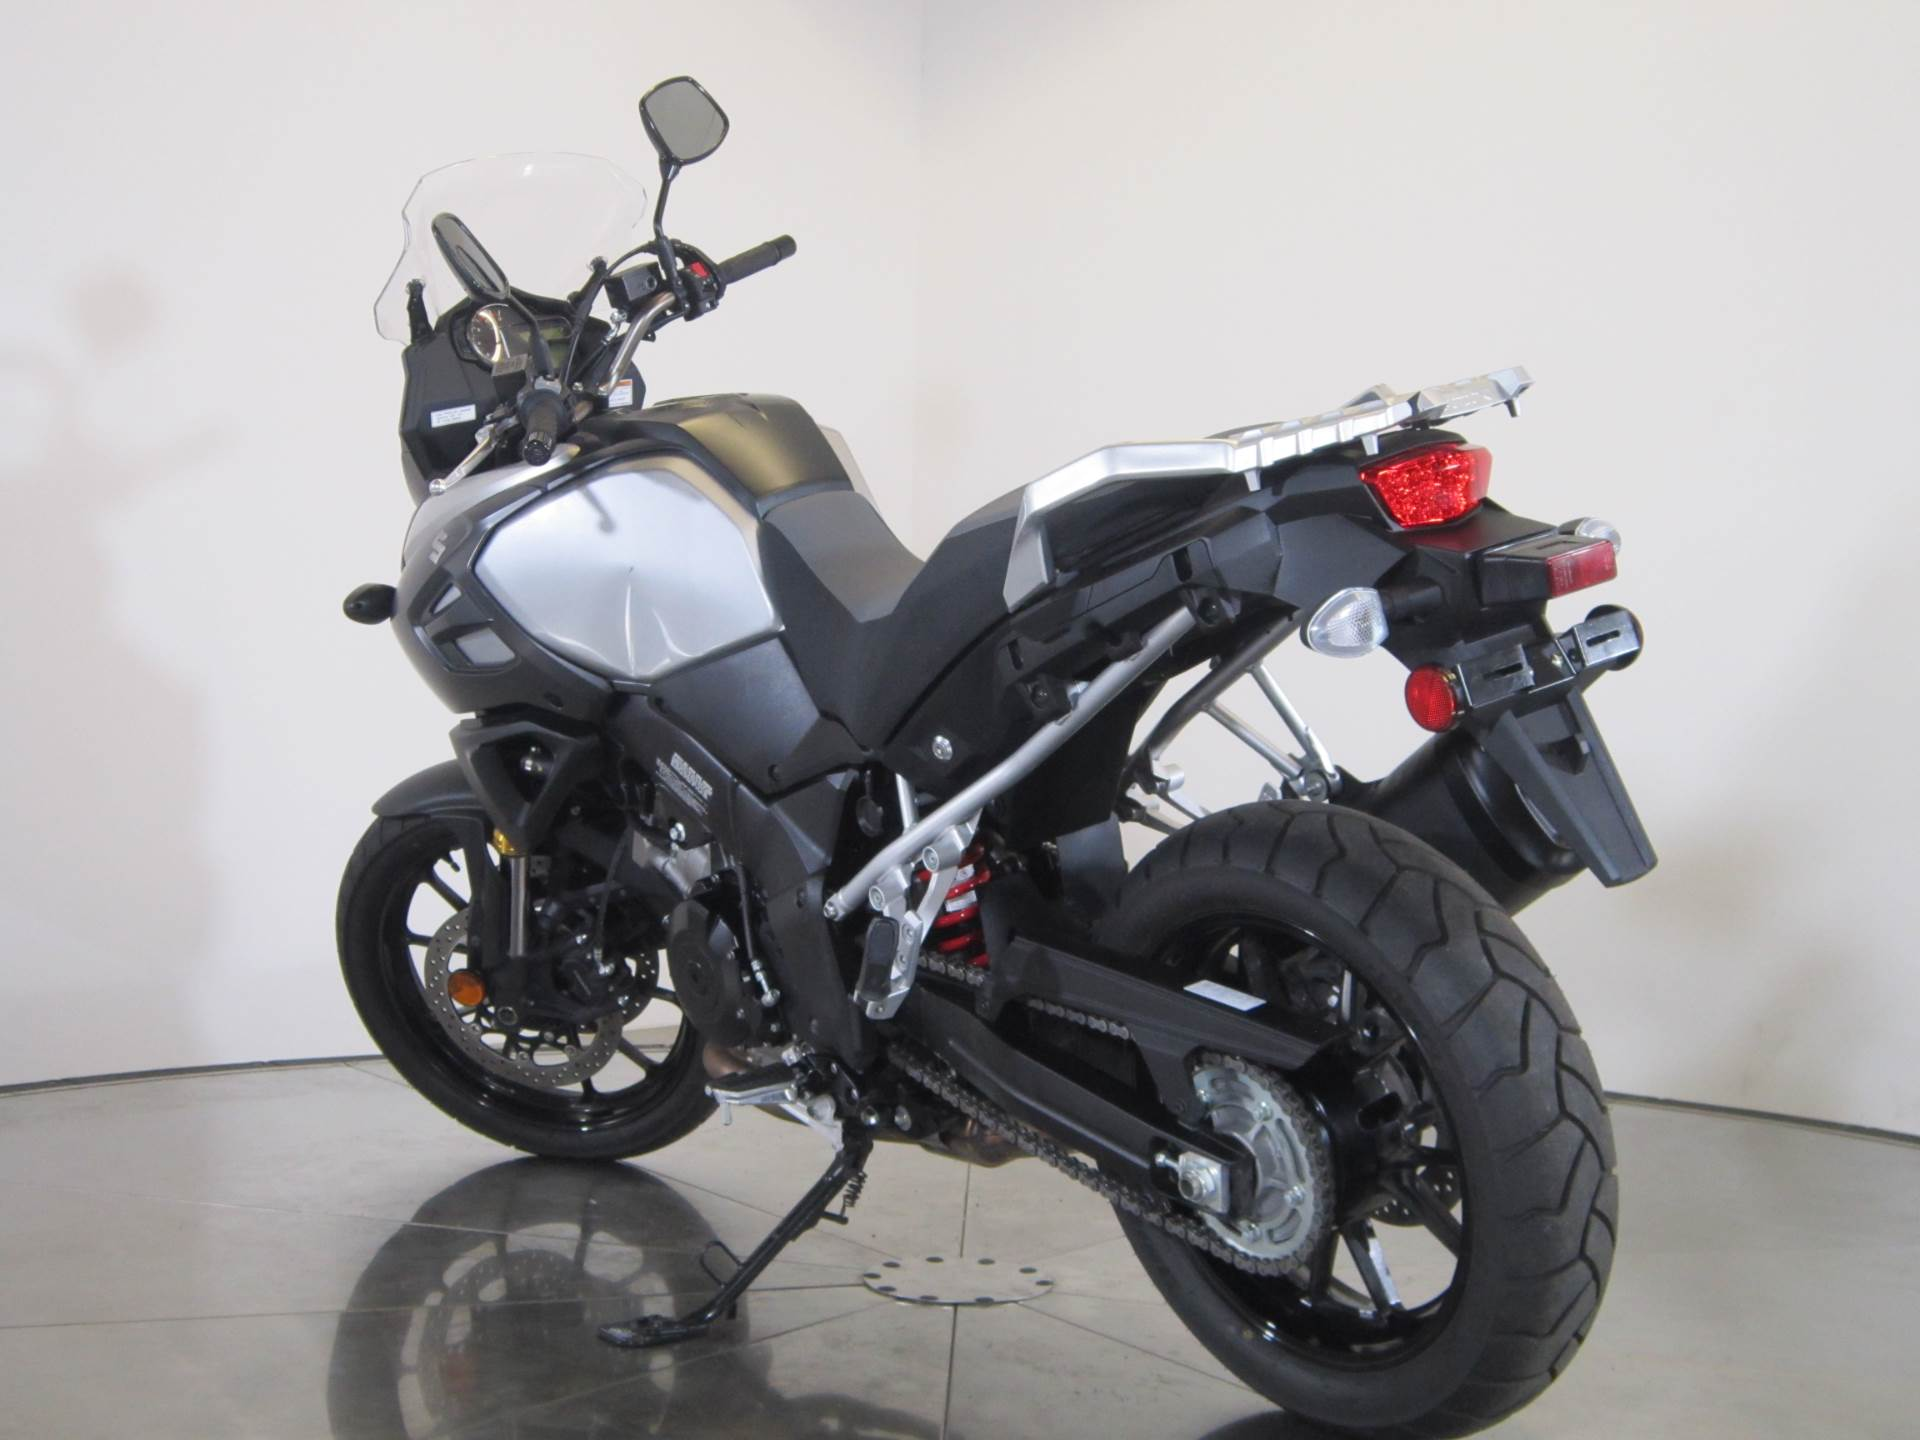 2016 Suzuki V-Strom 1000 ABS in Greenwood Village, Colorado